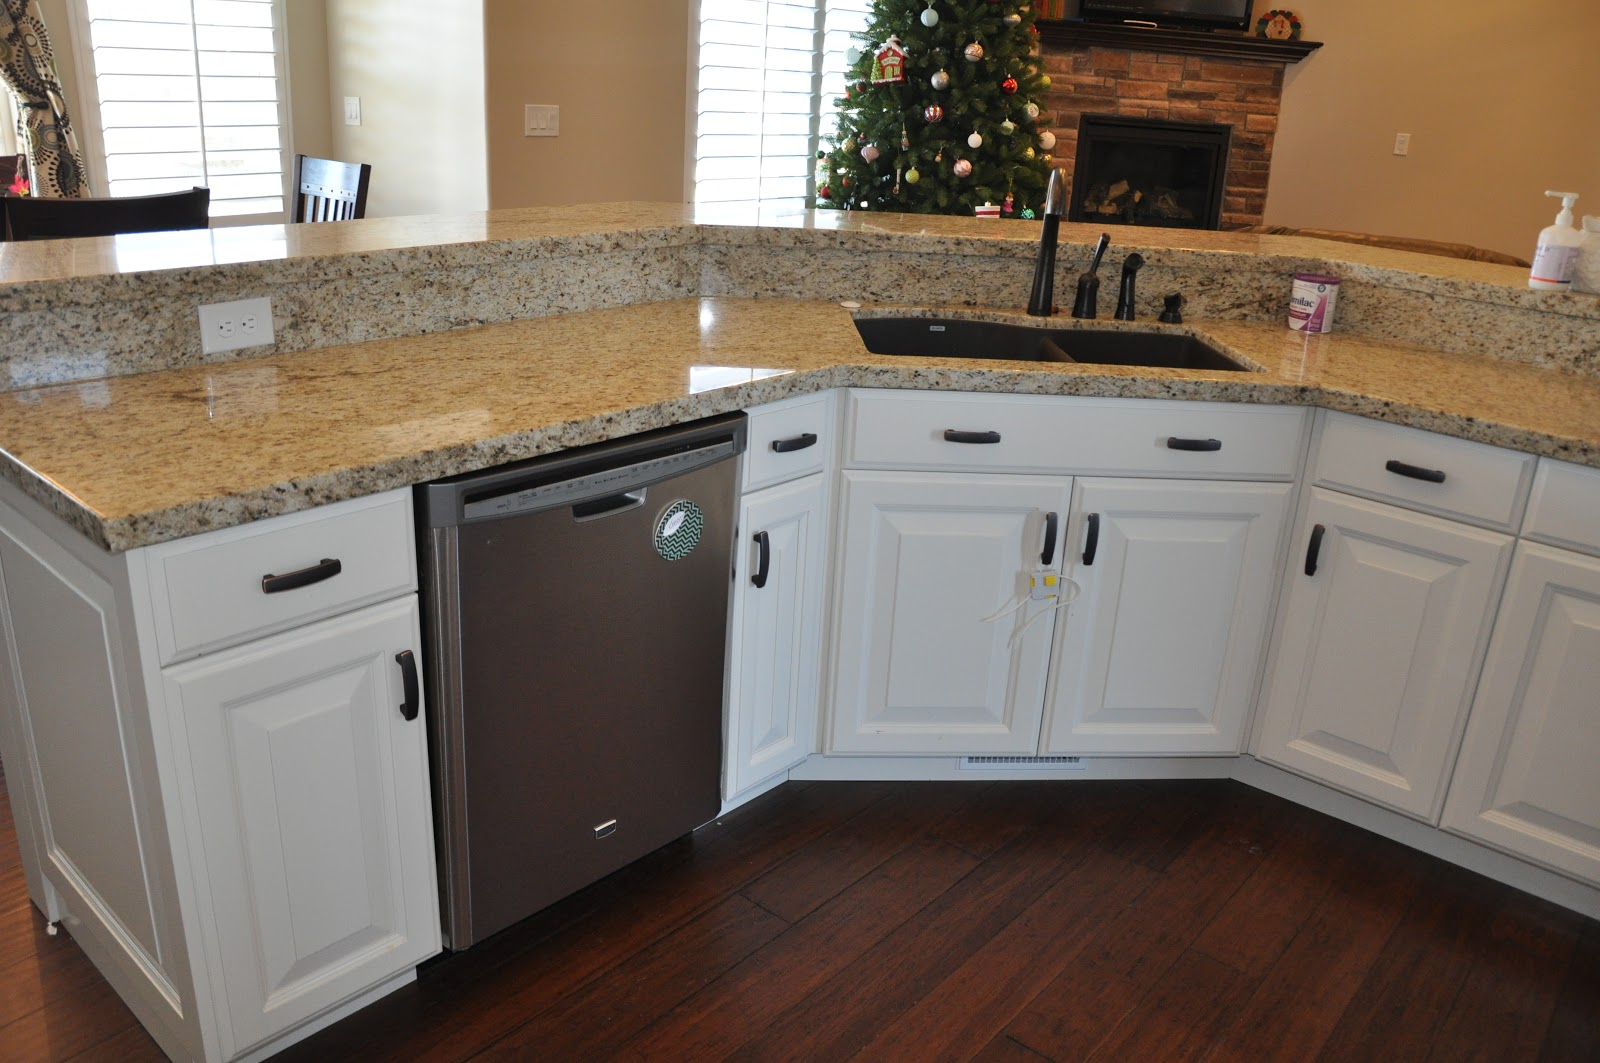 Stone ridge cabinets kitchen cabinets off white with for Images of off white kitchen cabinets